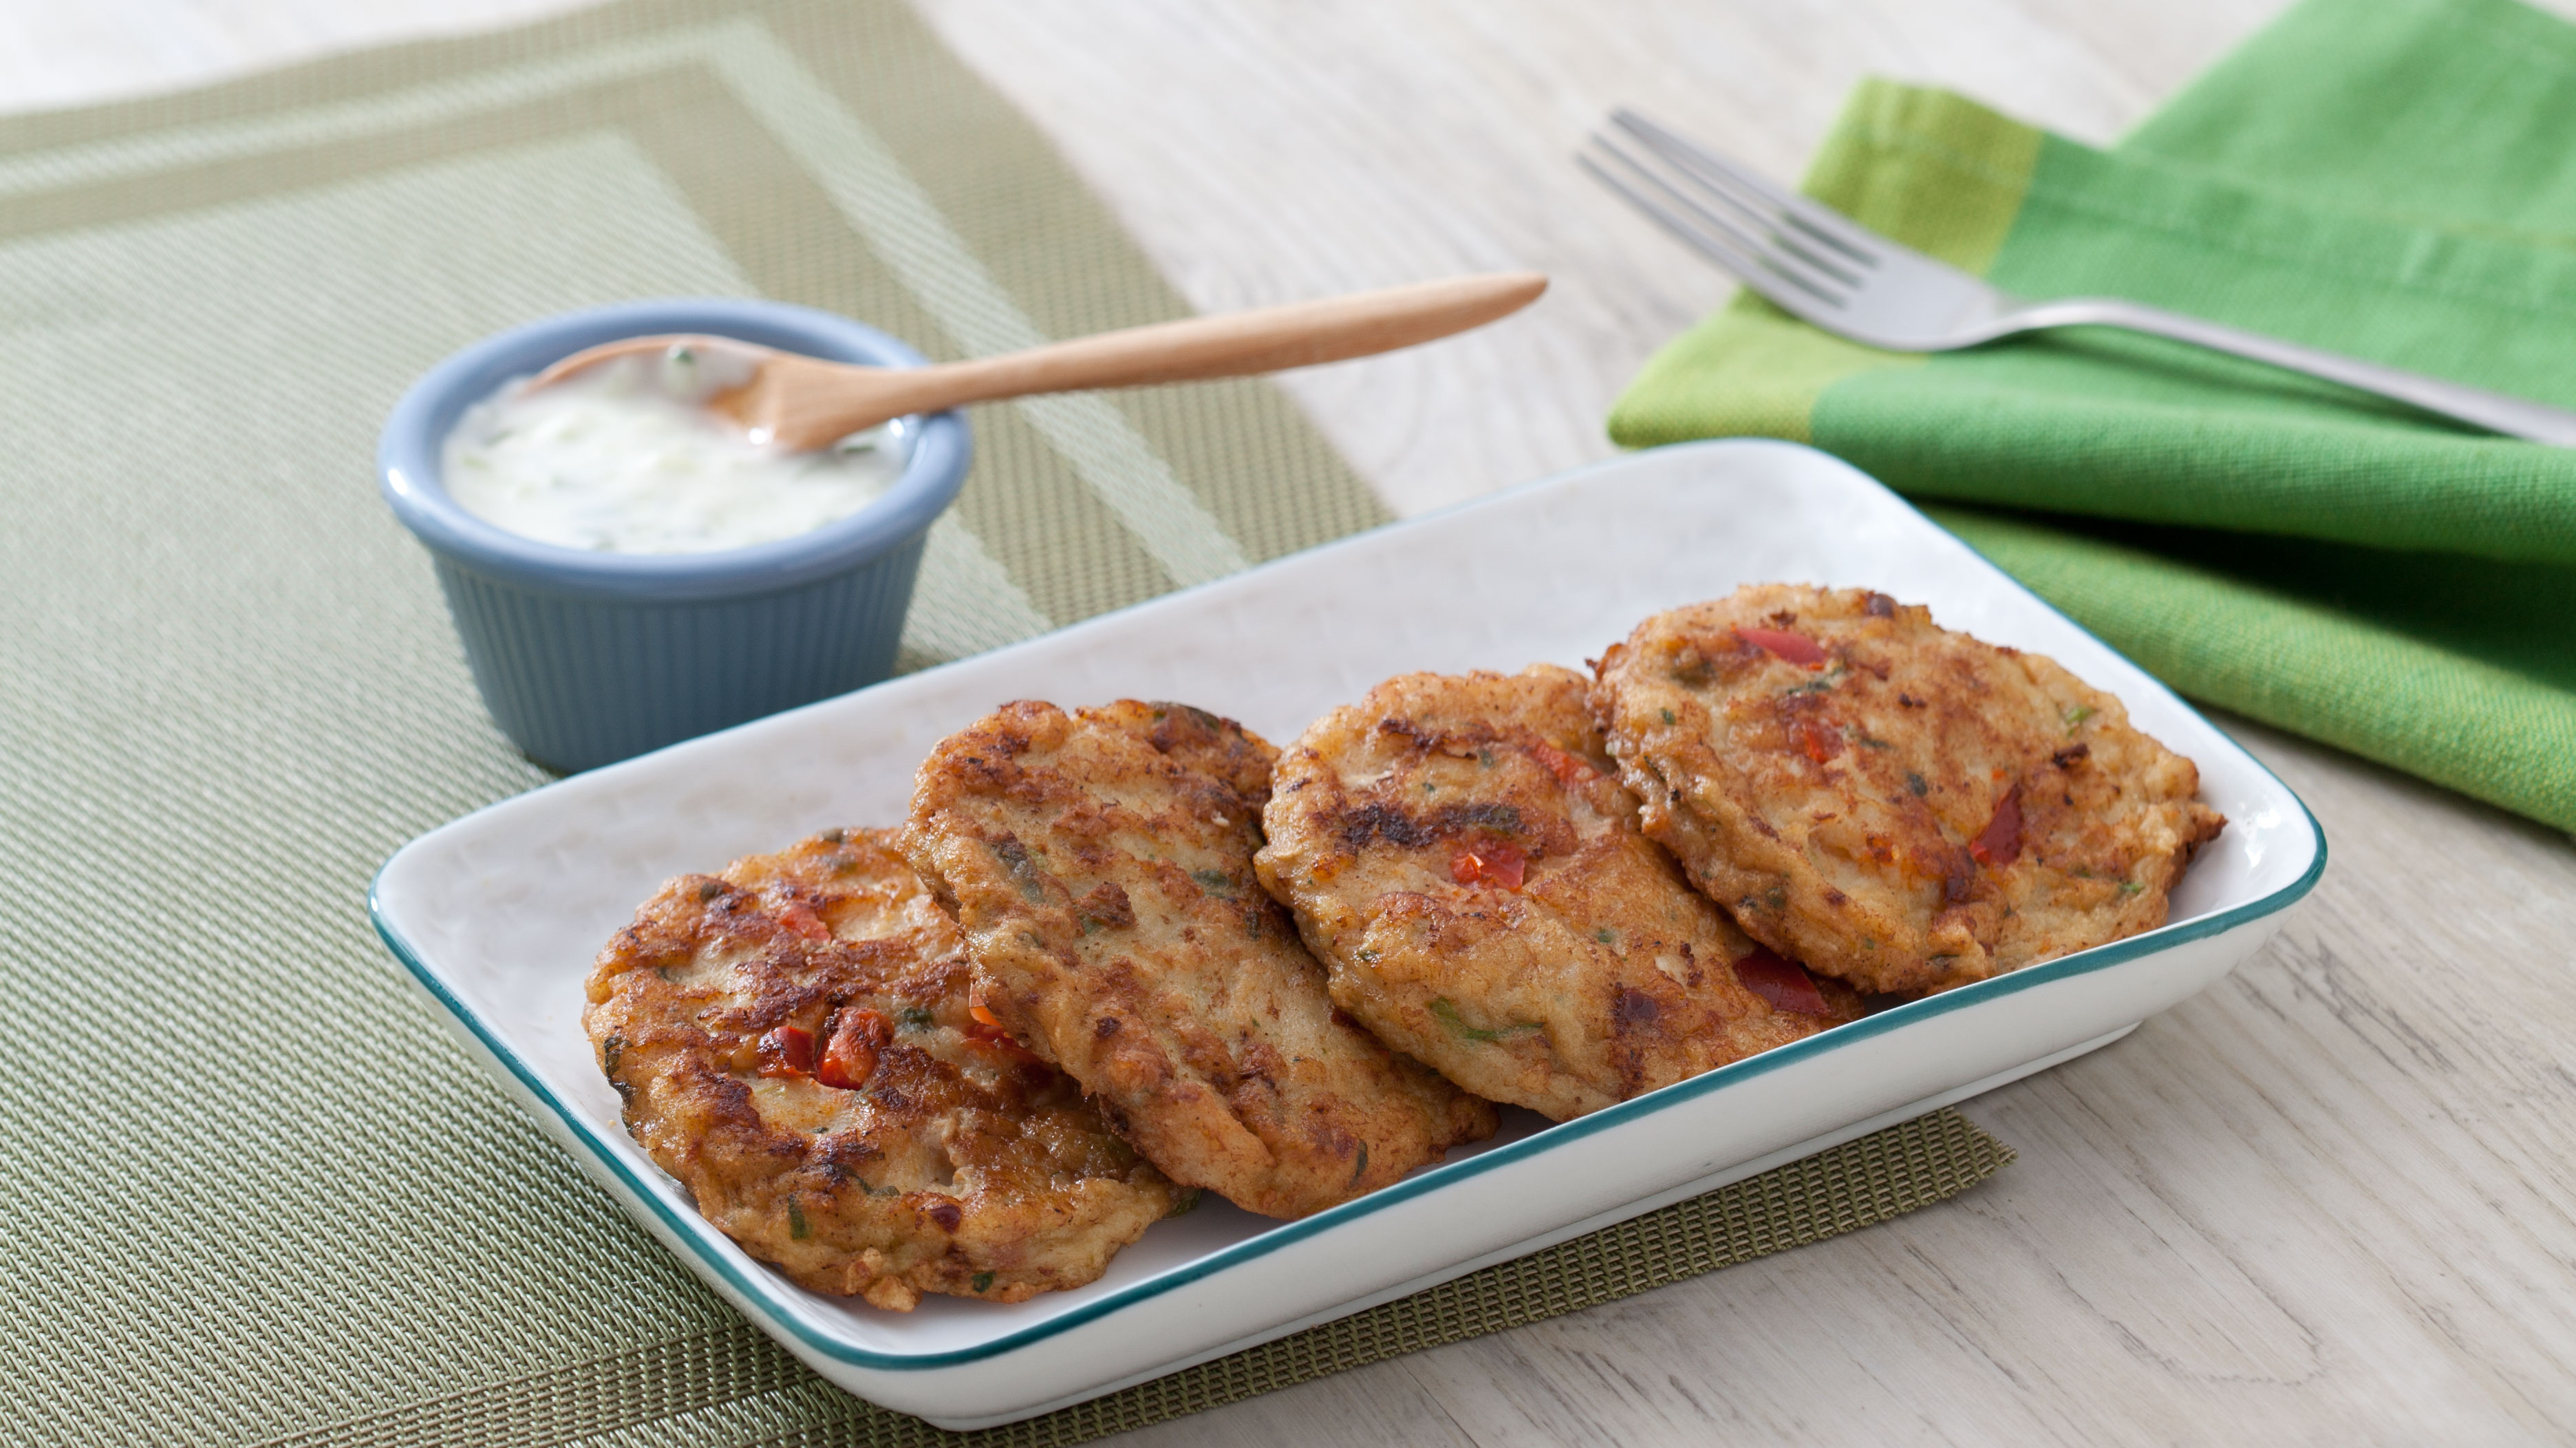 Yogurt dipping sauce for fish cakes spicy dip for Yogurt sauce for fish